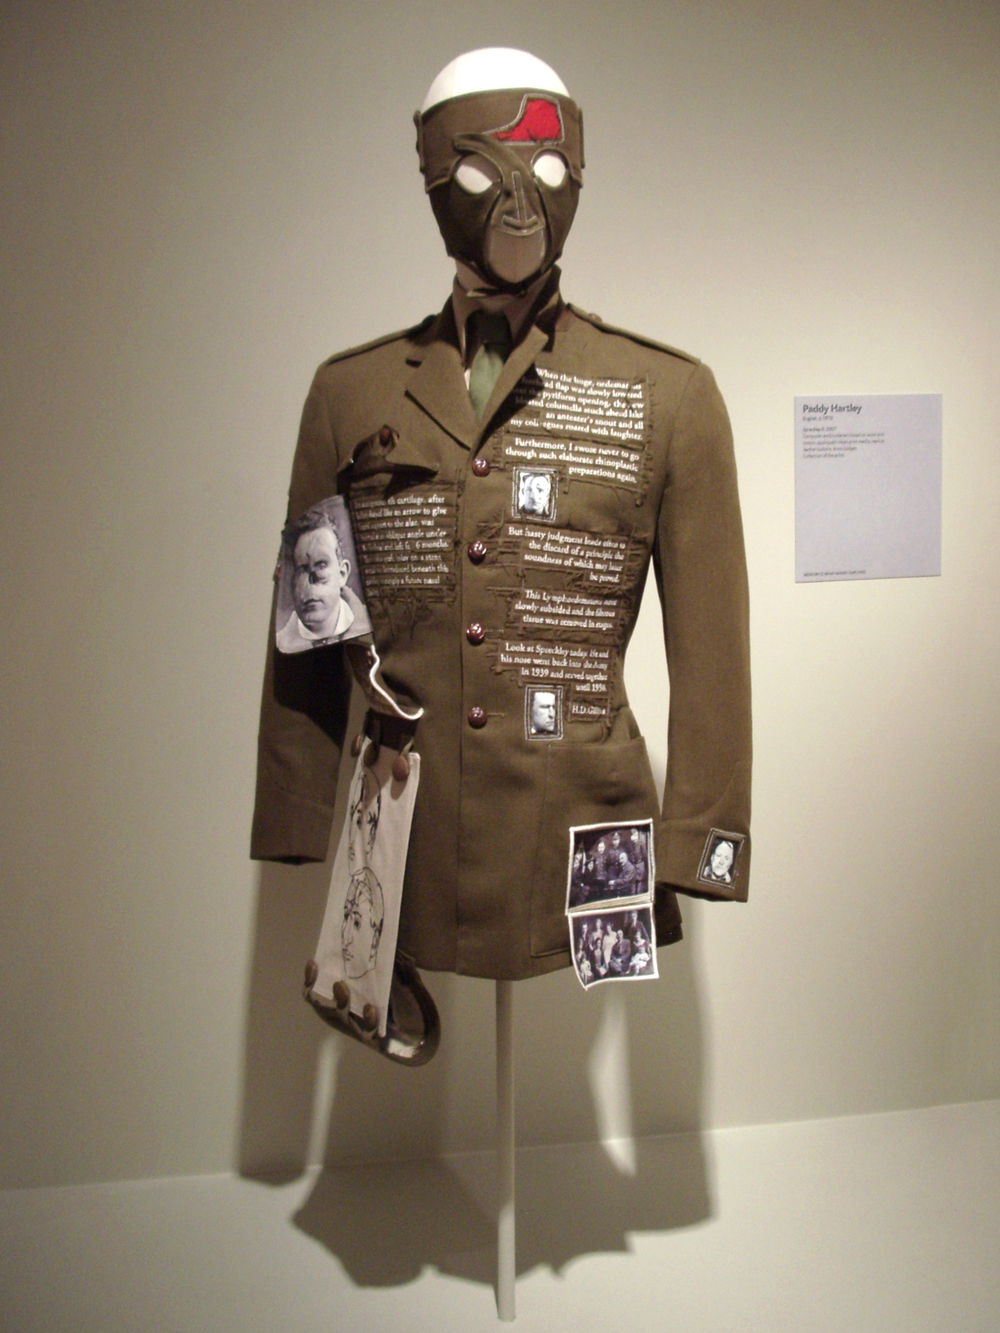 'Pricked'. Extreme Embroidery. Museum of Arts and Design, New York.